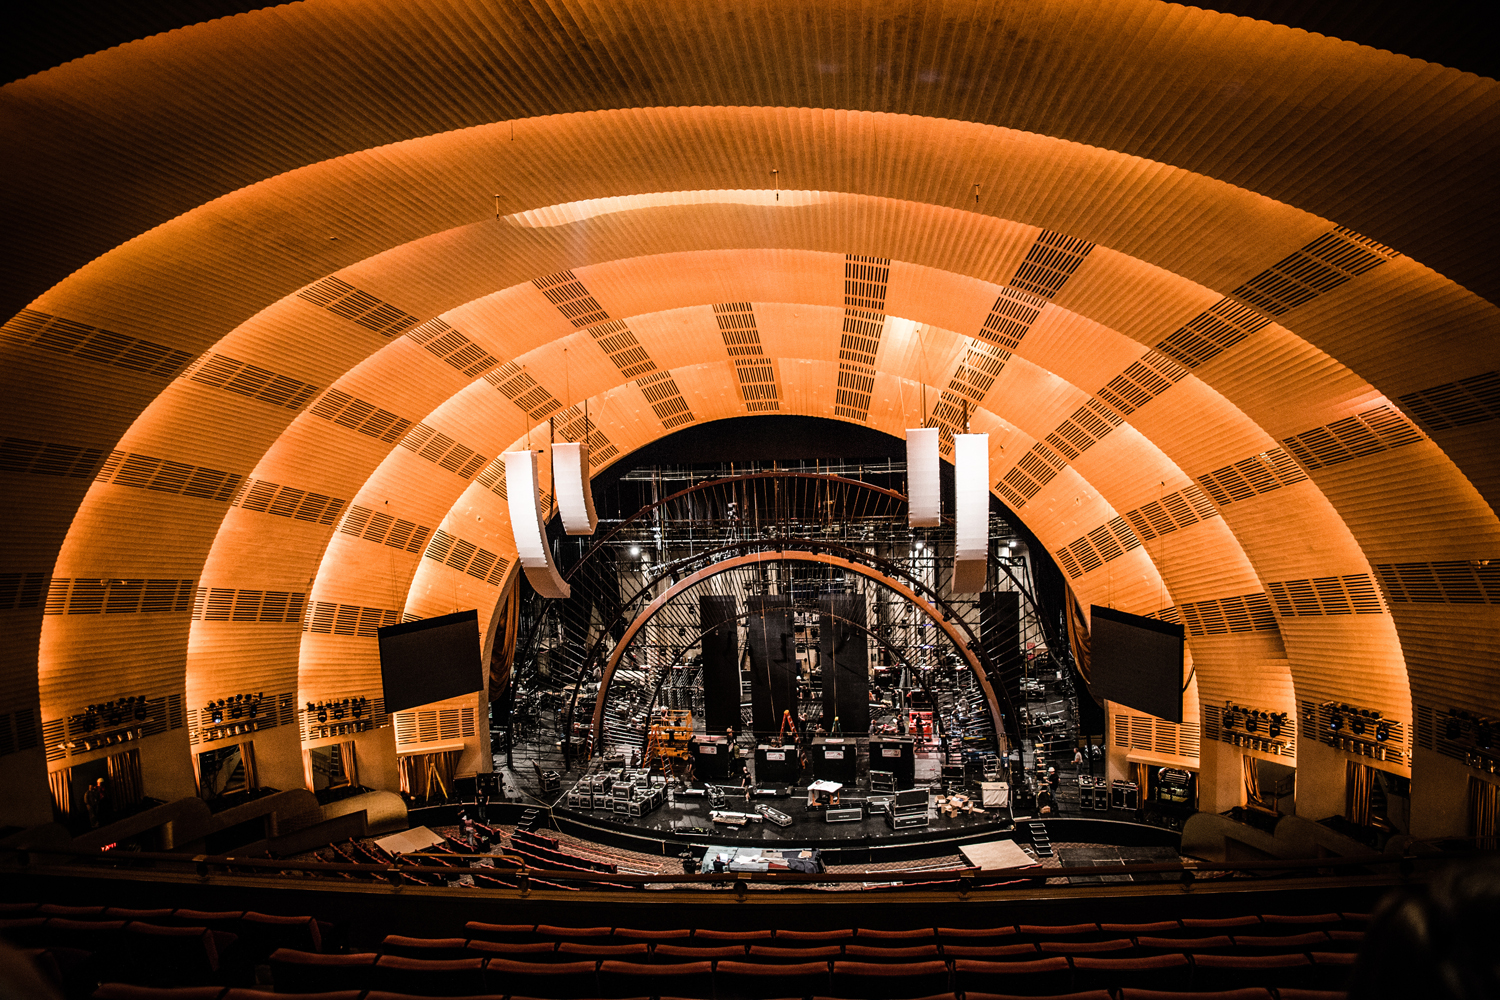 Set-up for 'America's Got Talent' at Radio City Music Hall